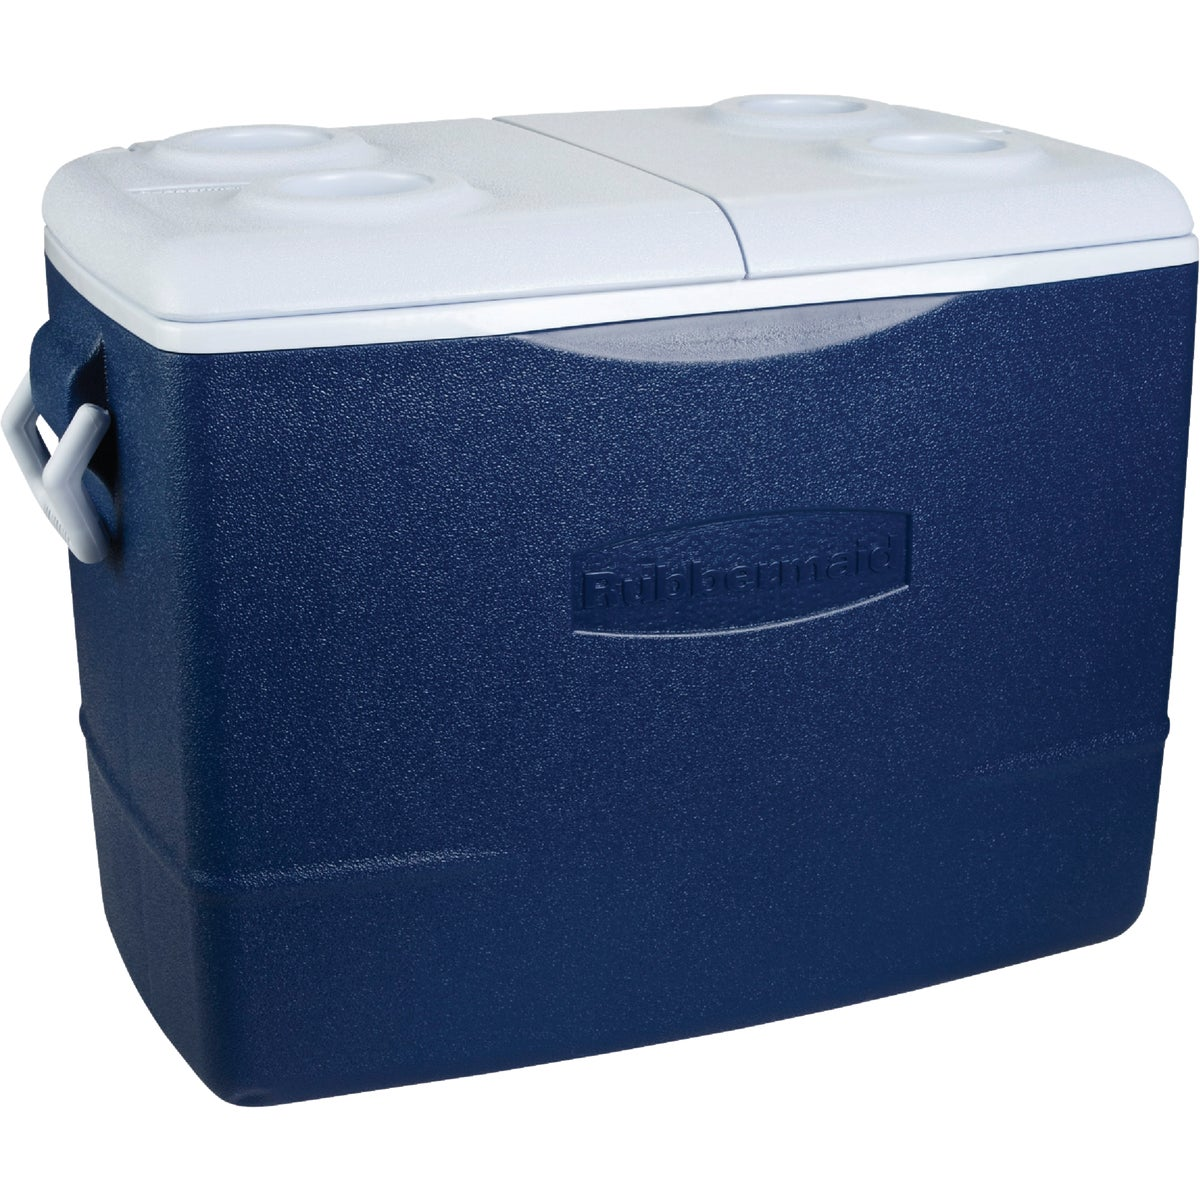 Rubbermaid 48QT BLUE COOLER 2A1502MODBL